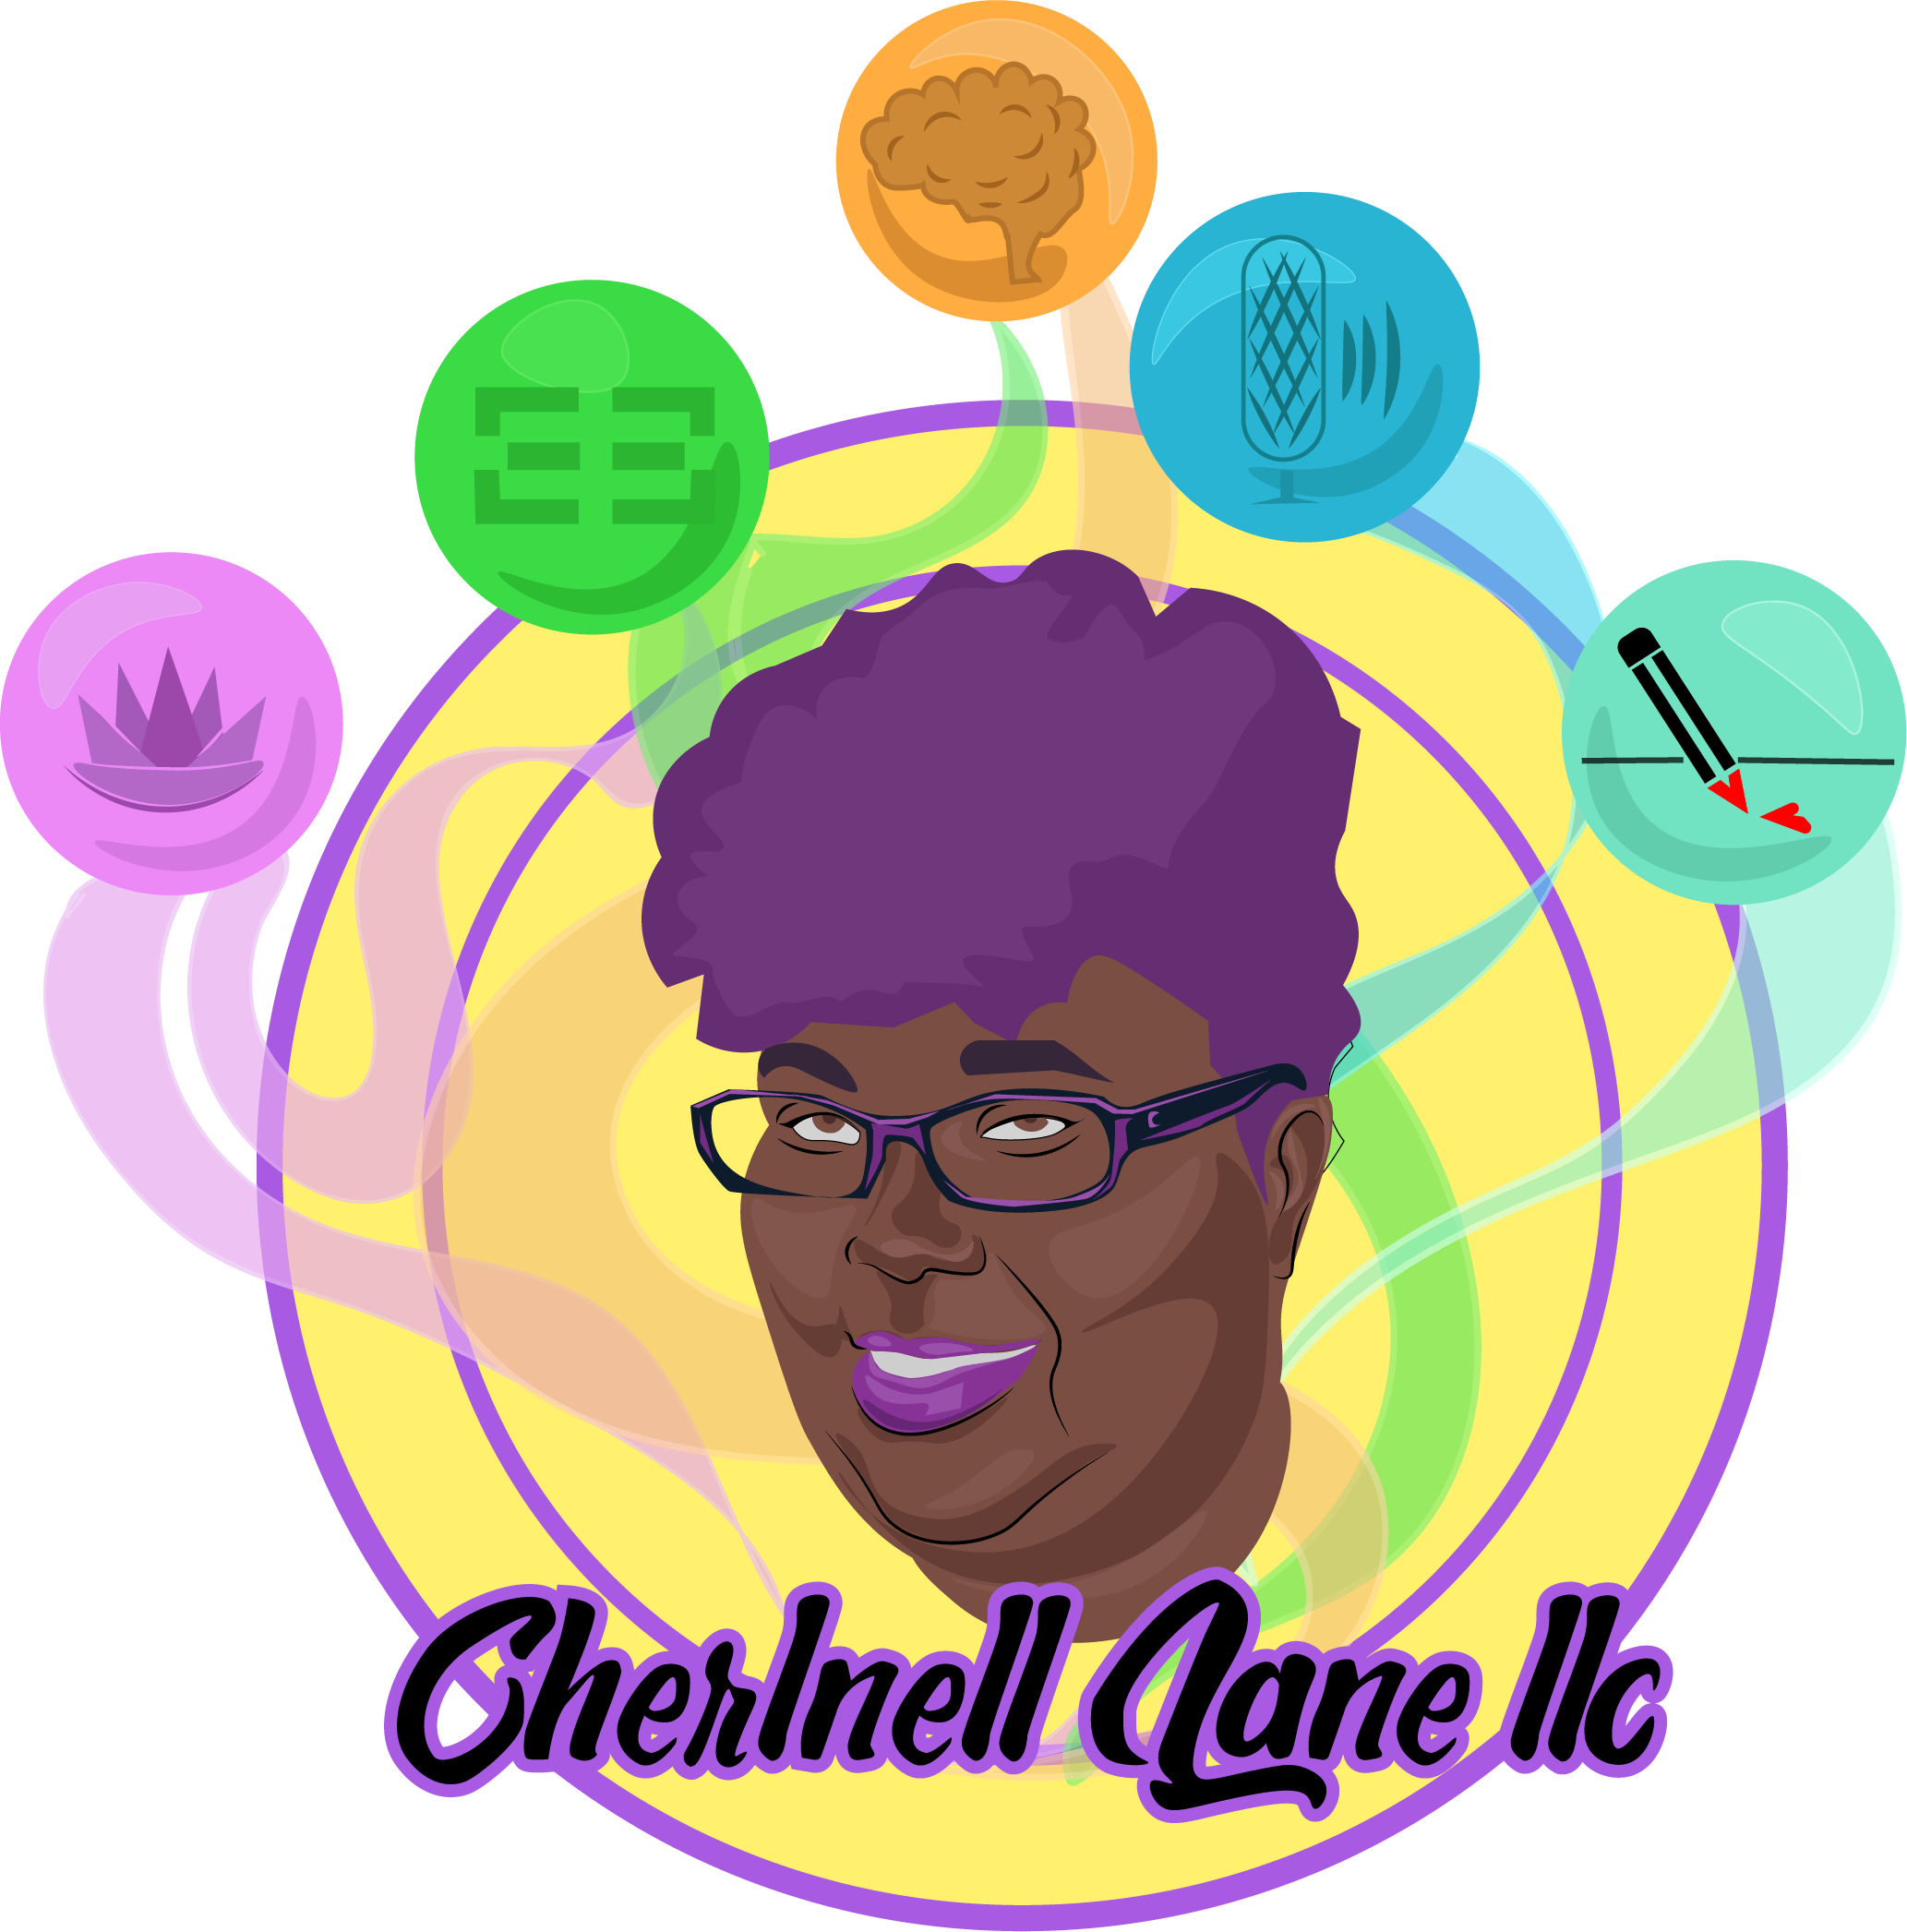 Cherlnell Lane is a roaring fire, under a cool demeanor, with a kind soul, that she shares authentically in hopes of healing the world. -